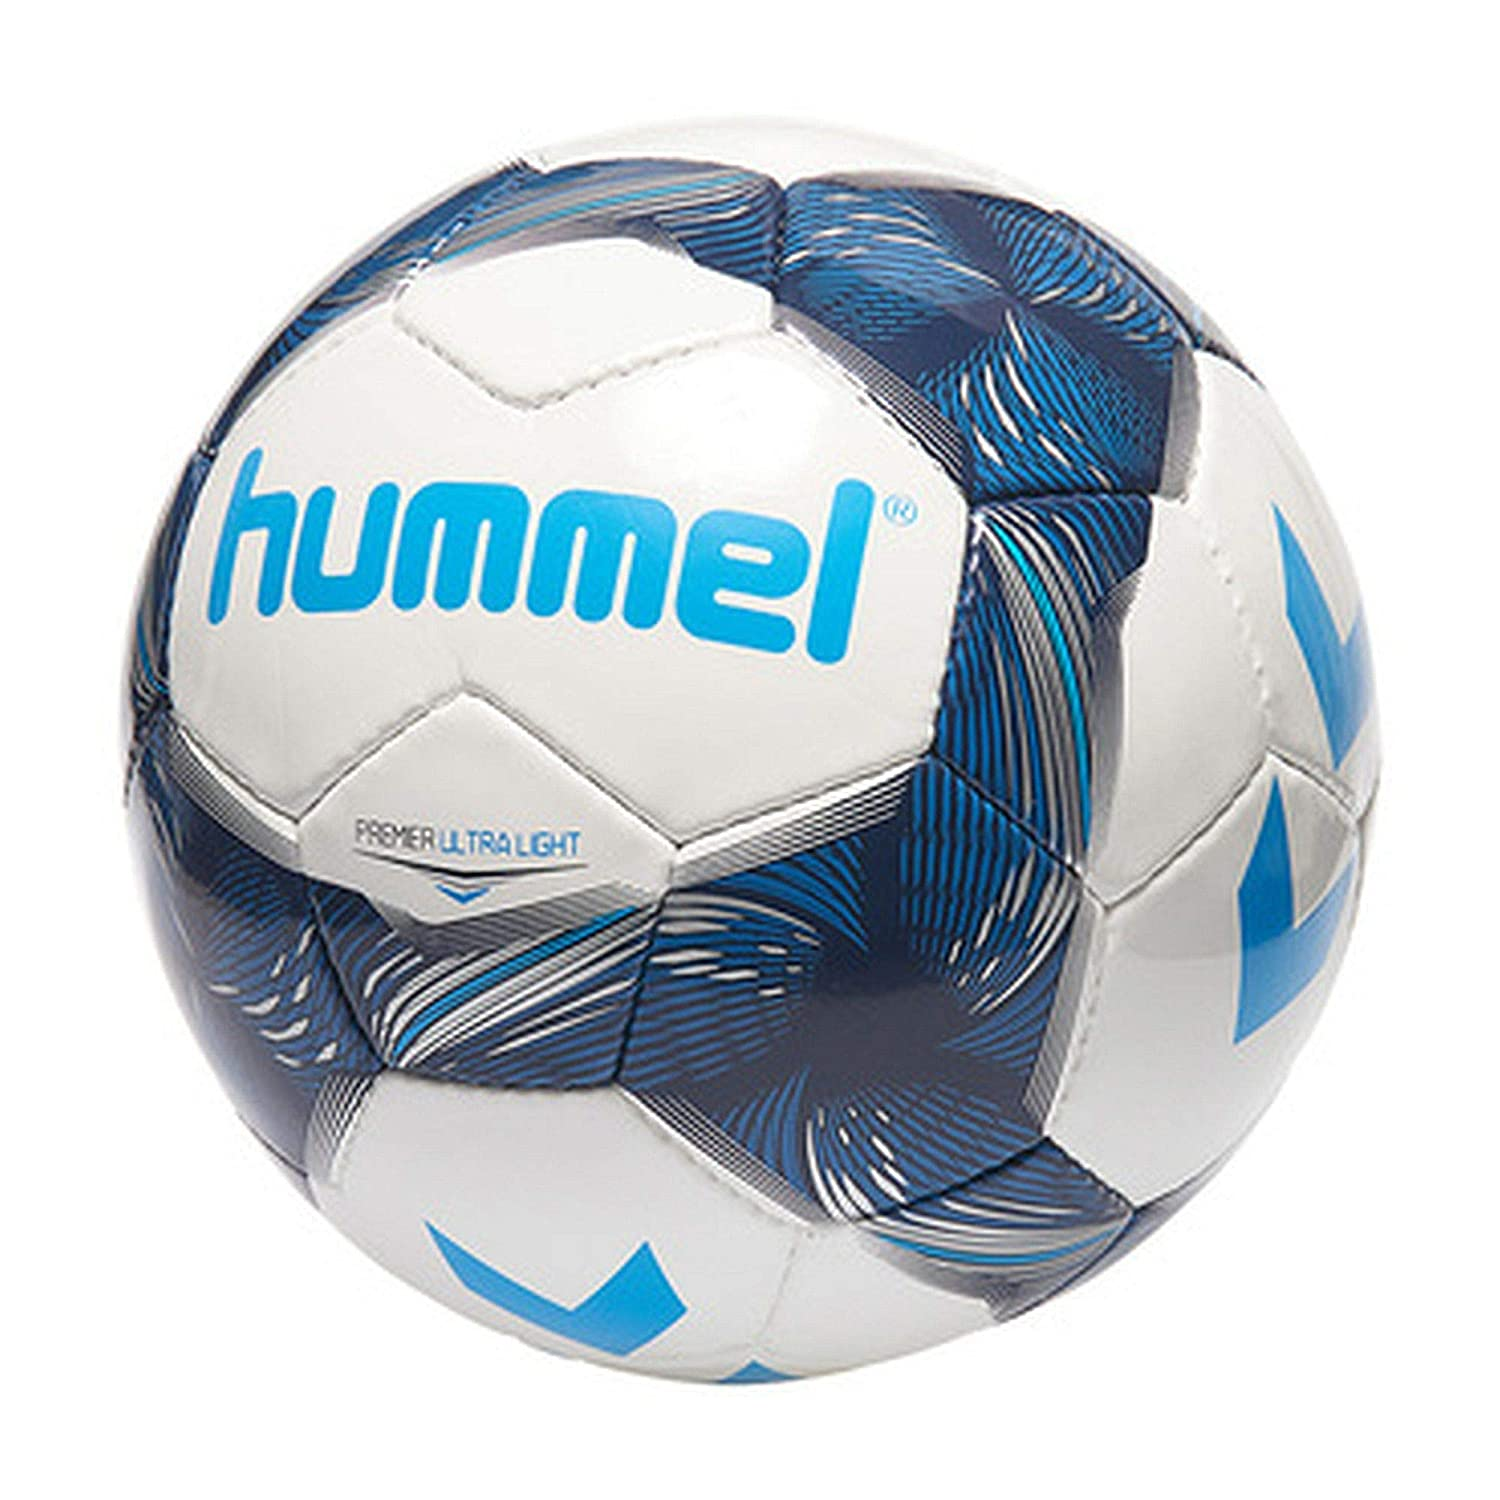 hummel Premier Ultra Light FB de Balonmano: Amazon.es: Deportes y ...